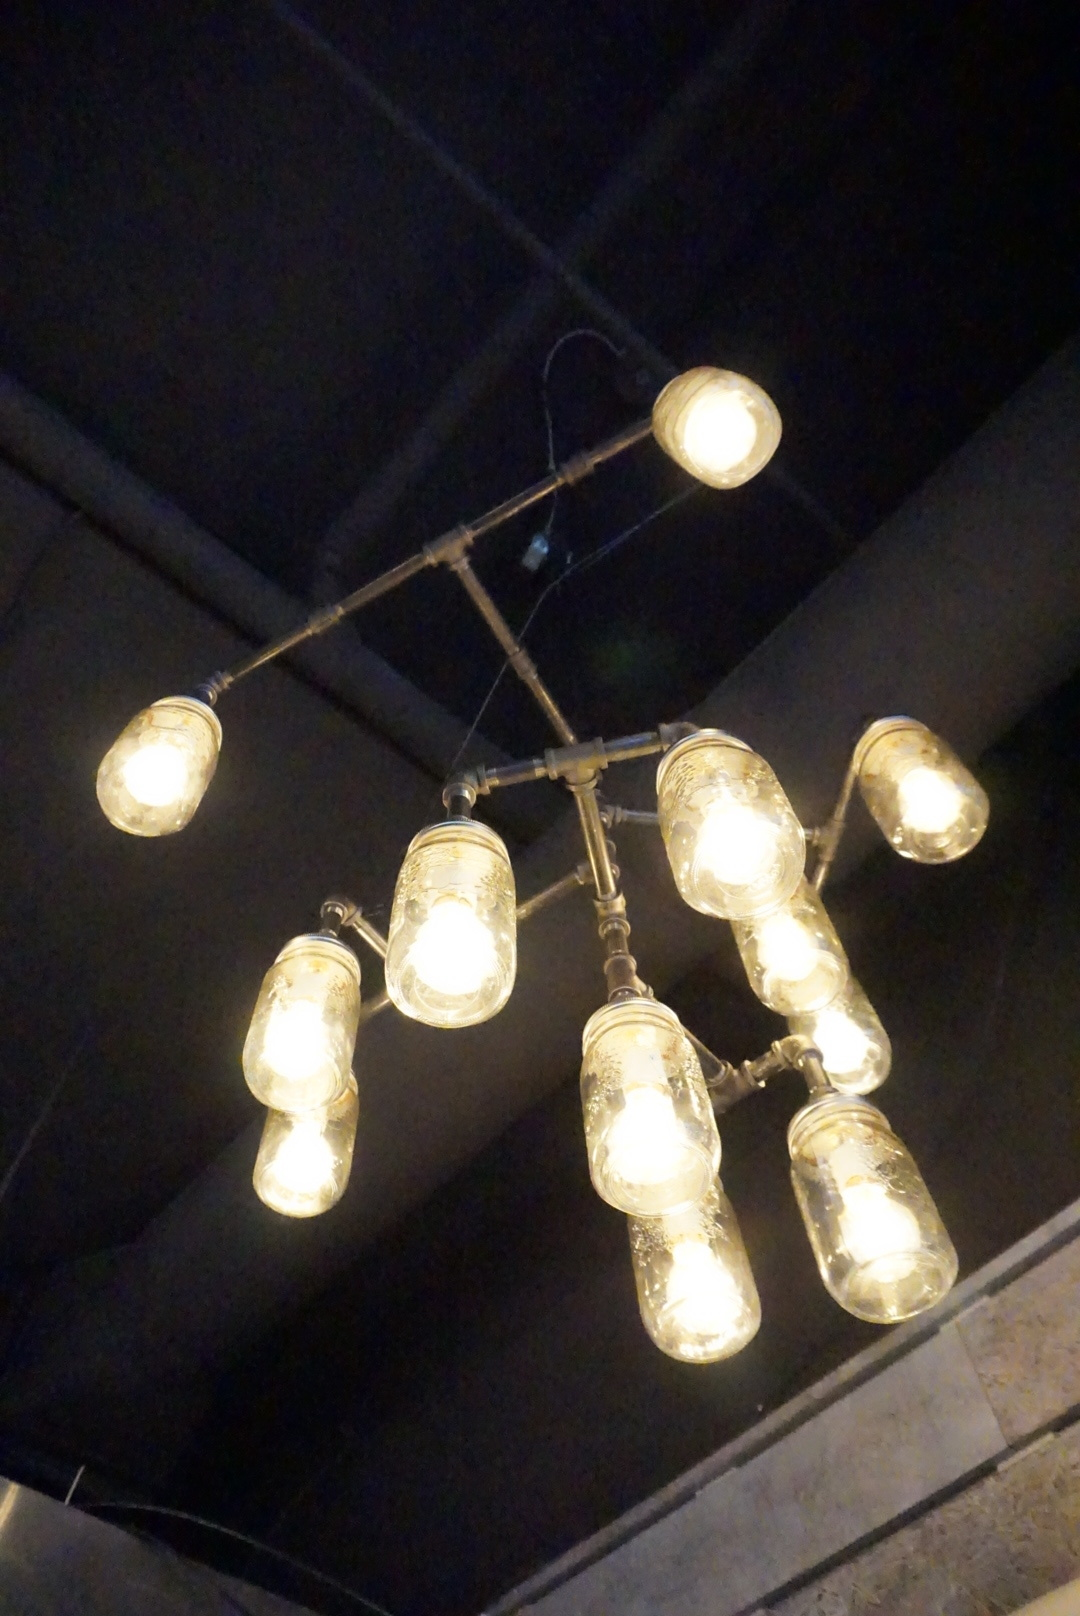 All the lighting at Tangram was designed and constructed by Mike Wong and his team.